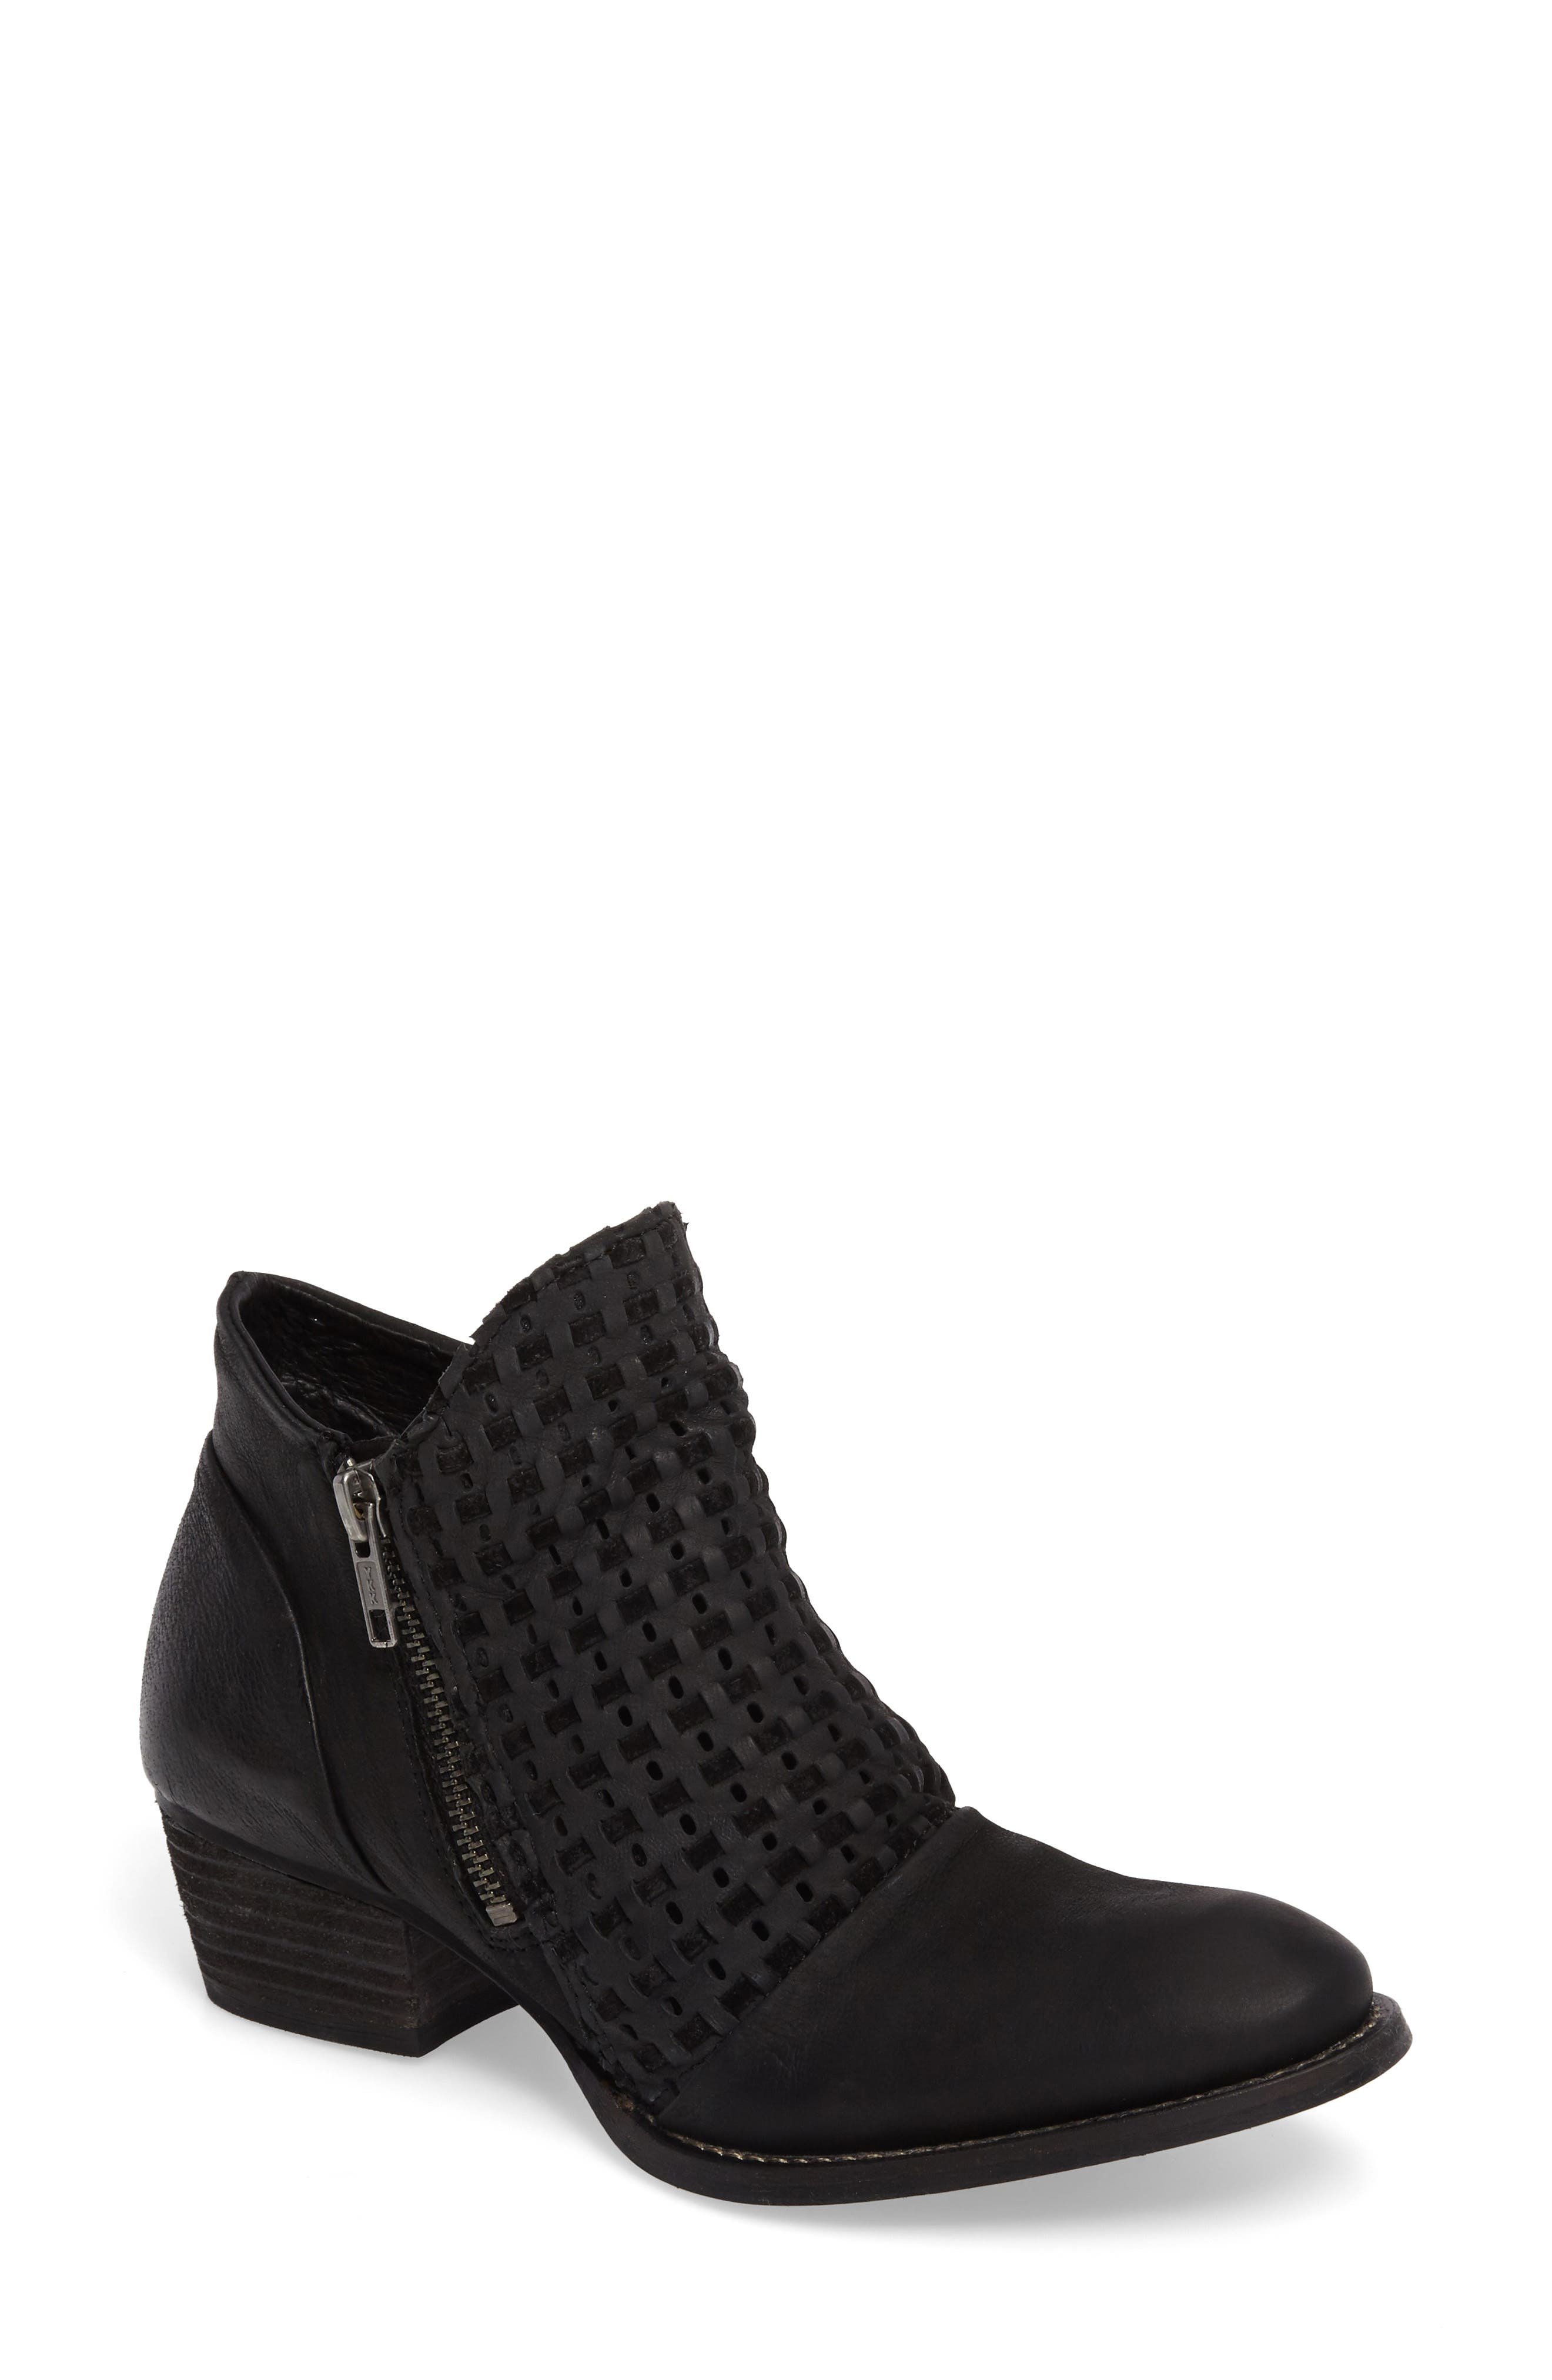 Ravi Perforated Woven Bootie,                             Main thumbnail 1, color,                             002